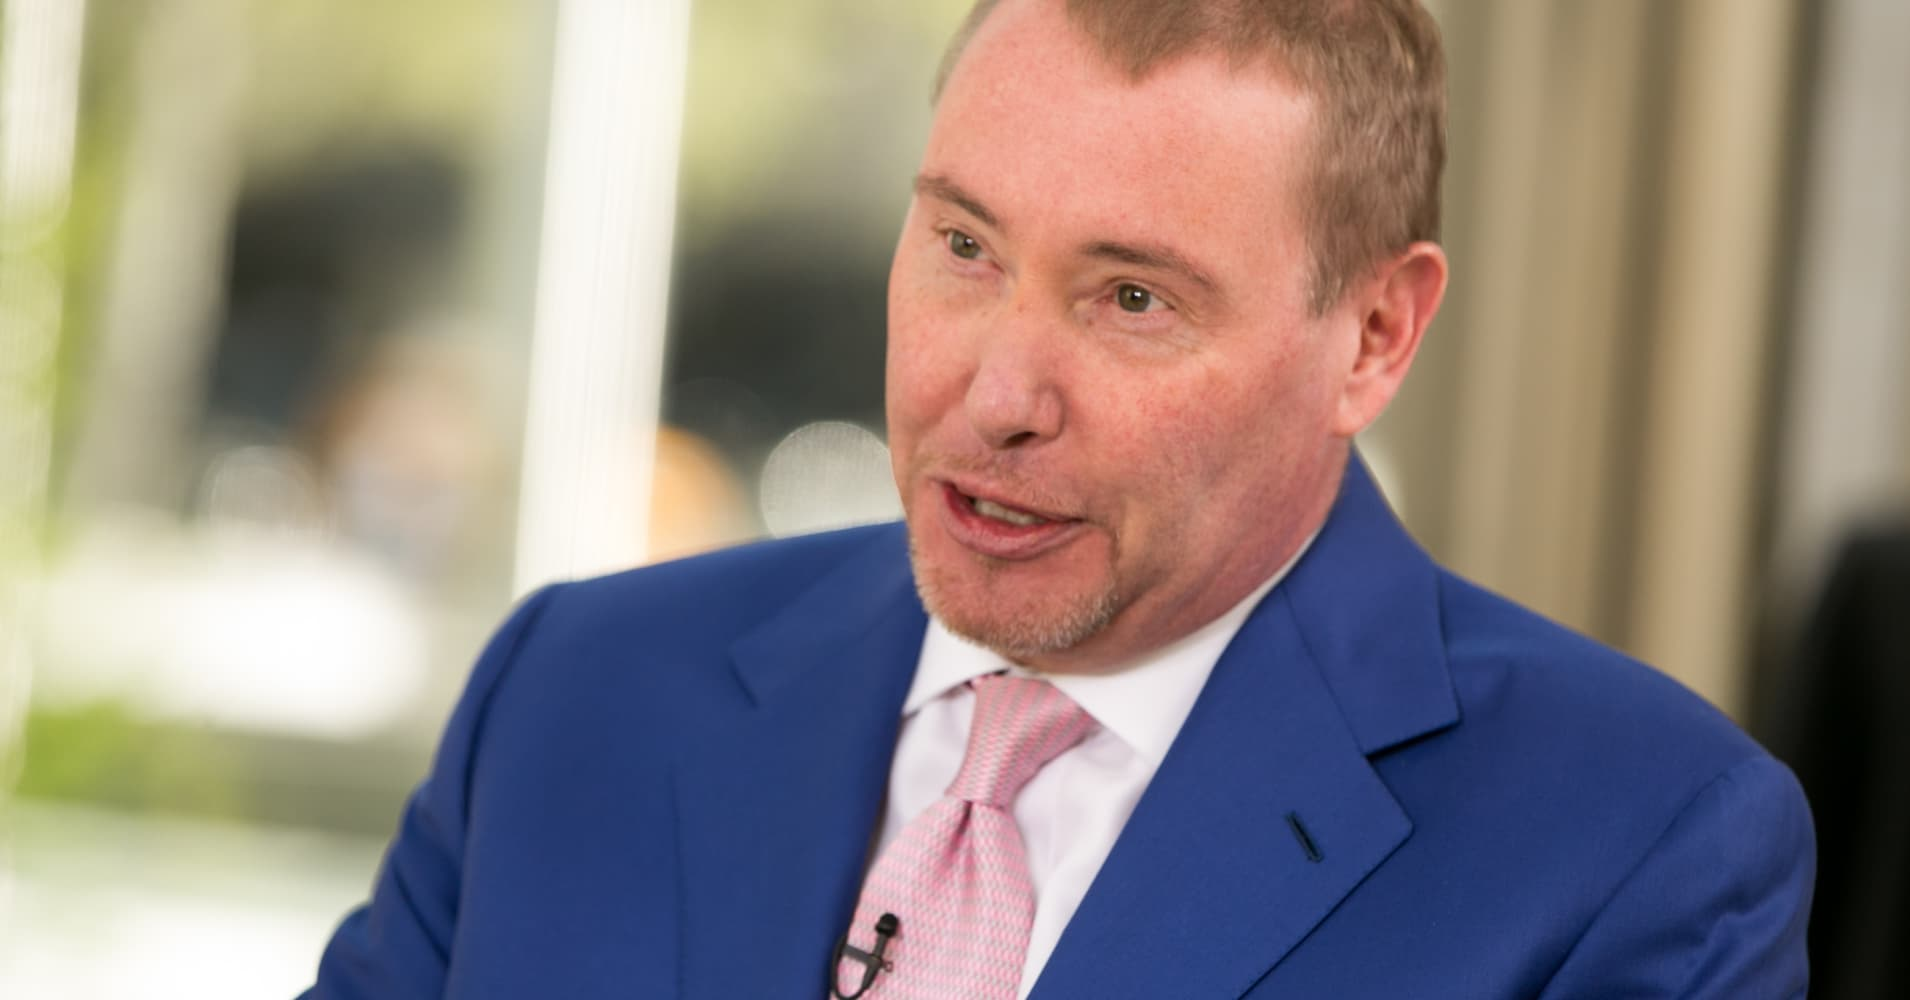 Jeffrey Gundlach says the S&P 500 is headed to new lows: 'I'm pretty sure this is a bear market'